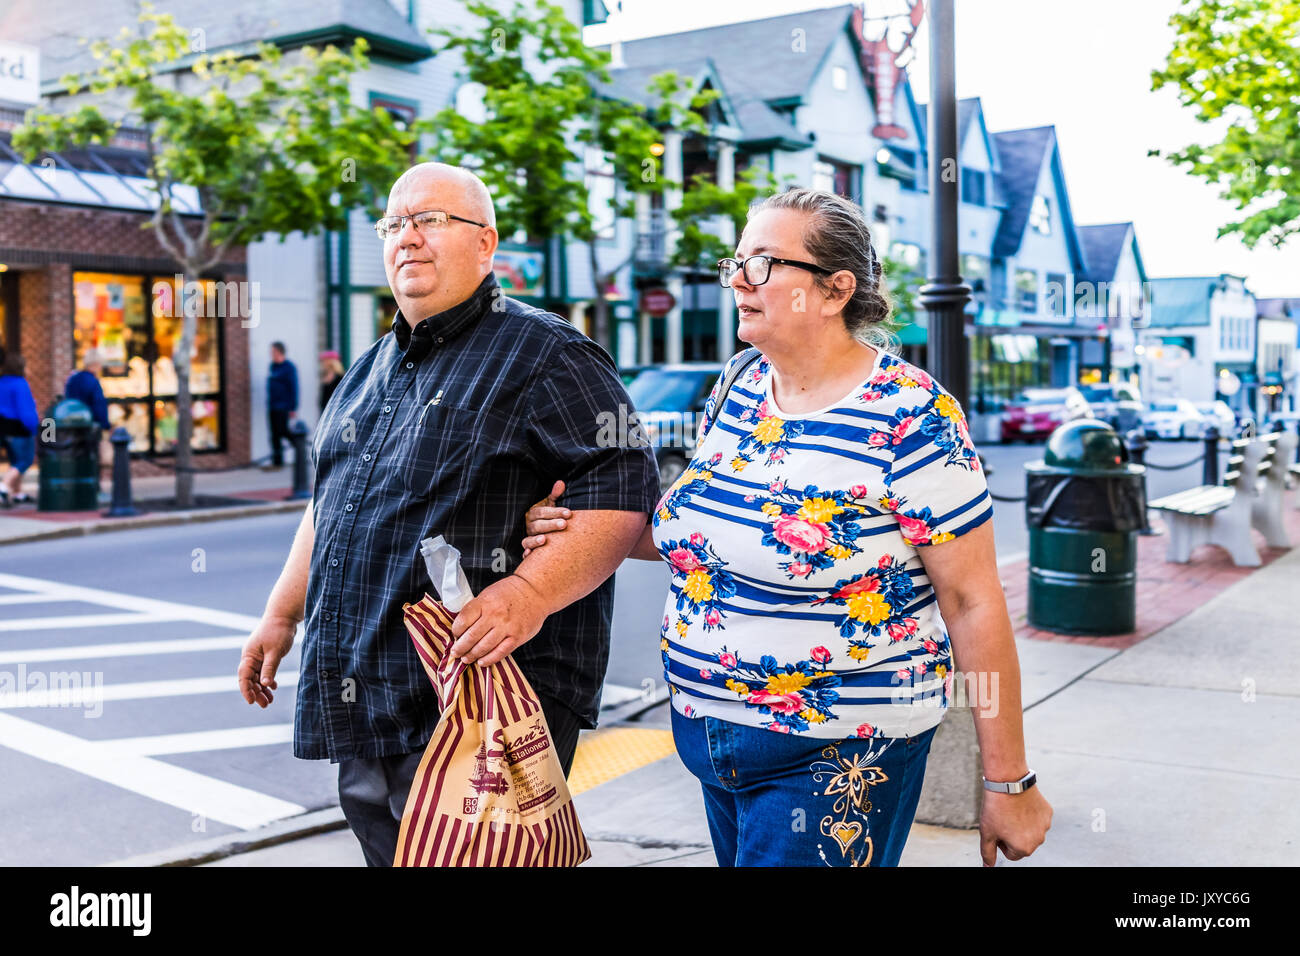 Bar Harbor, USA - June 8, 2017: Couple crossing sidewalk street in downtown village in summer on main road carrying food - Stock Image